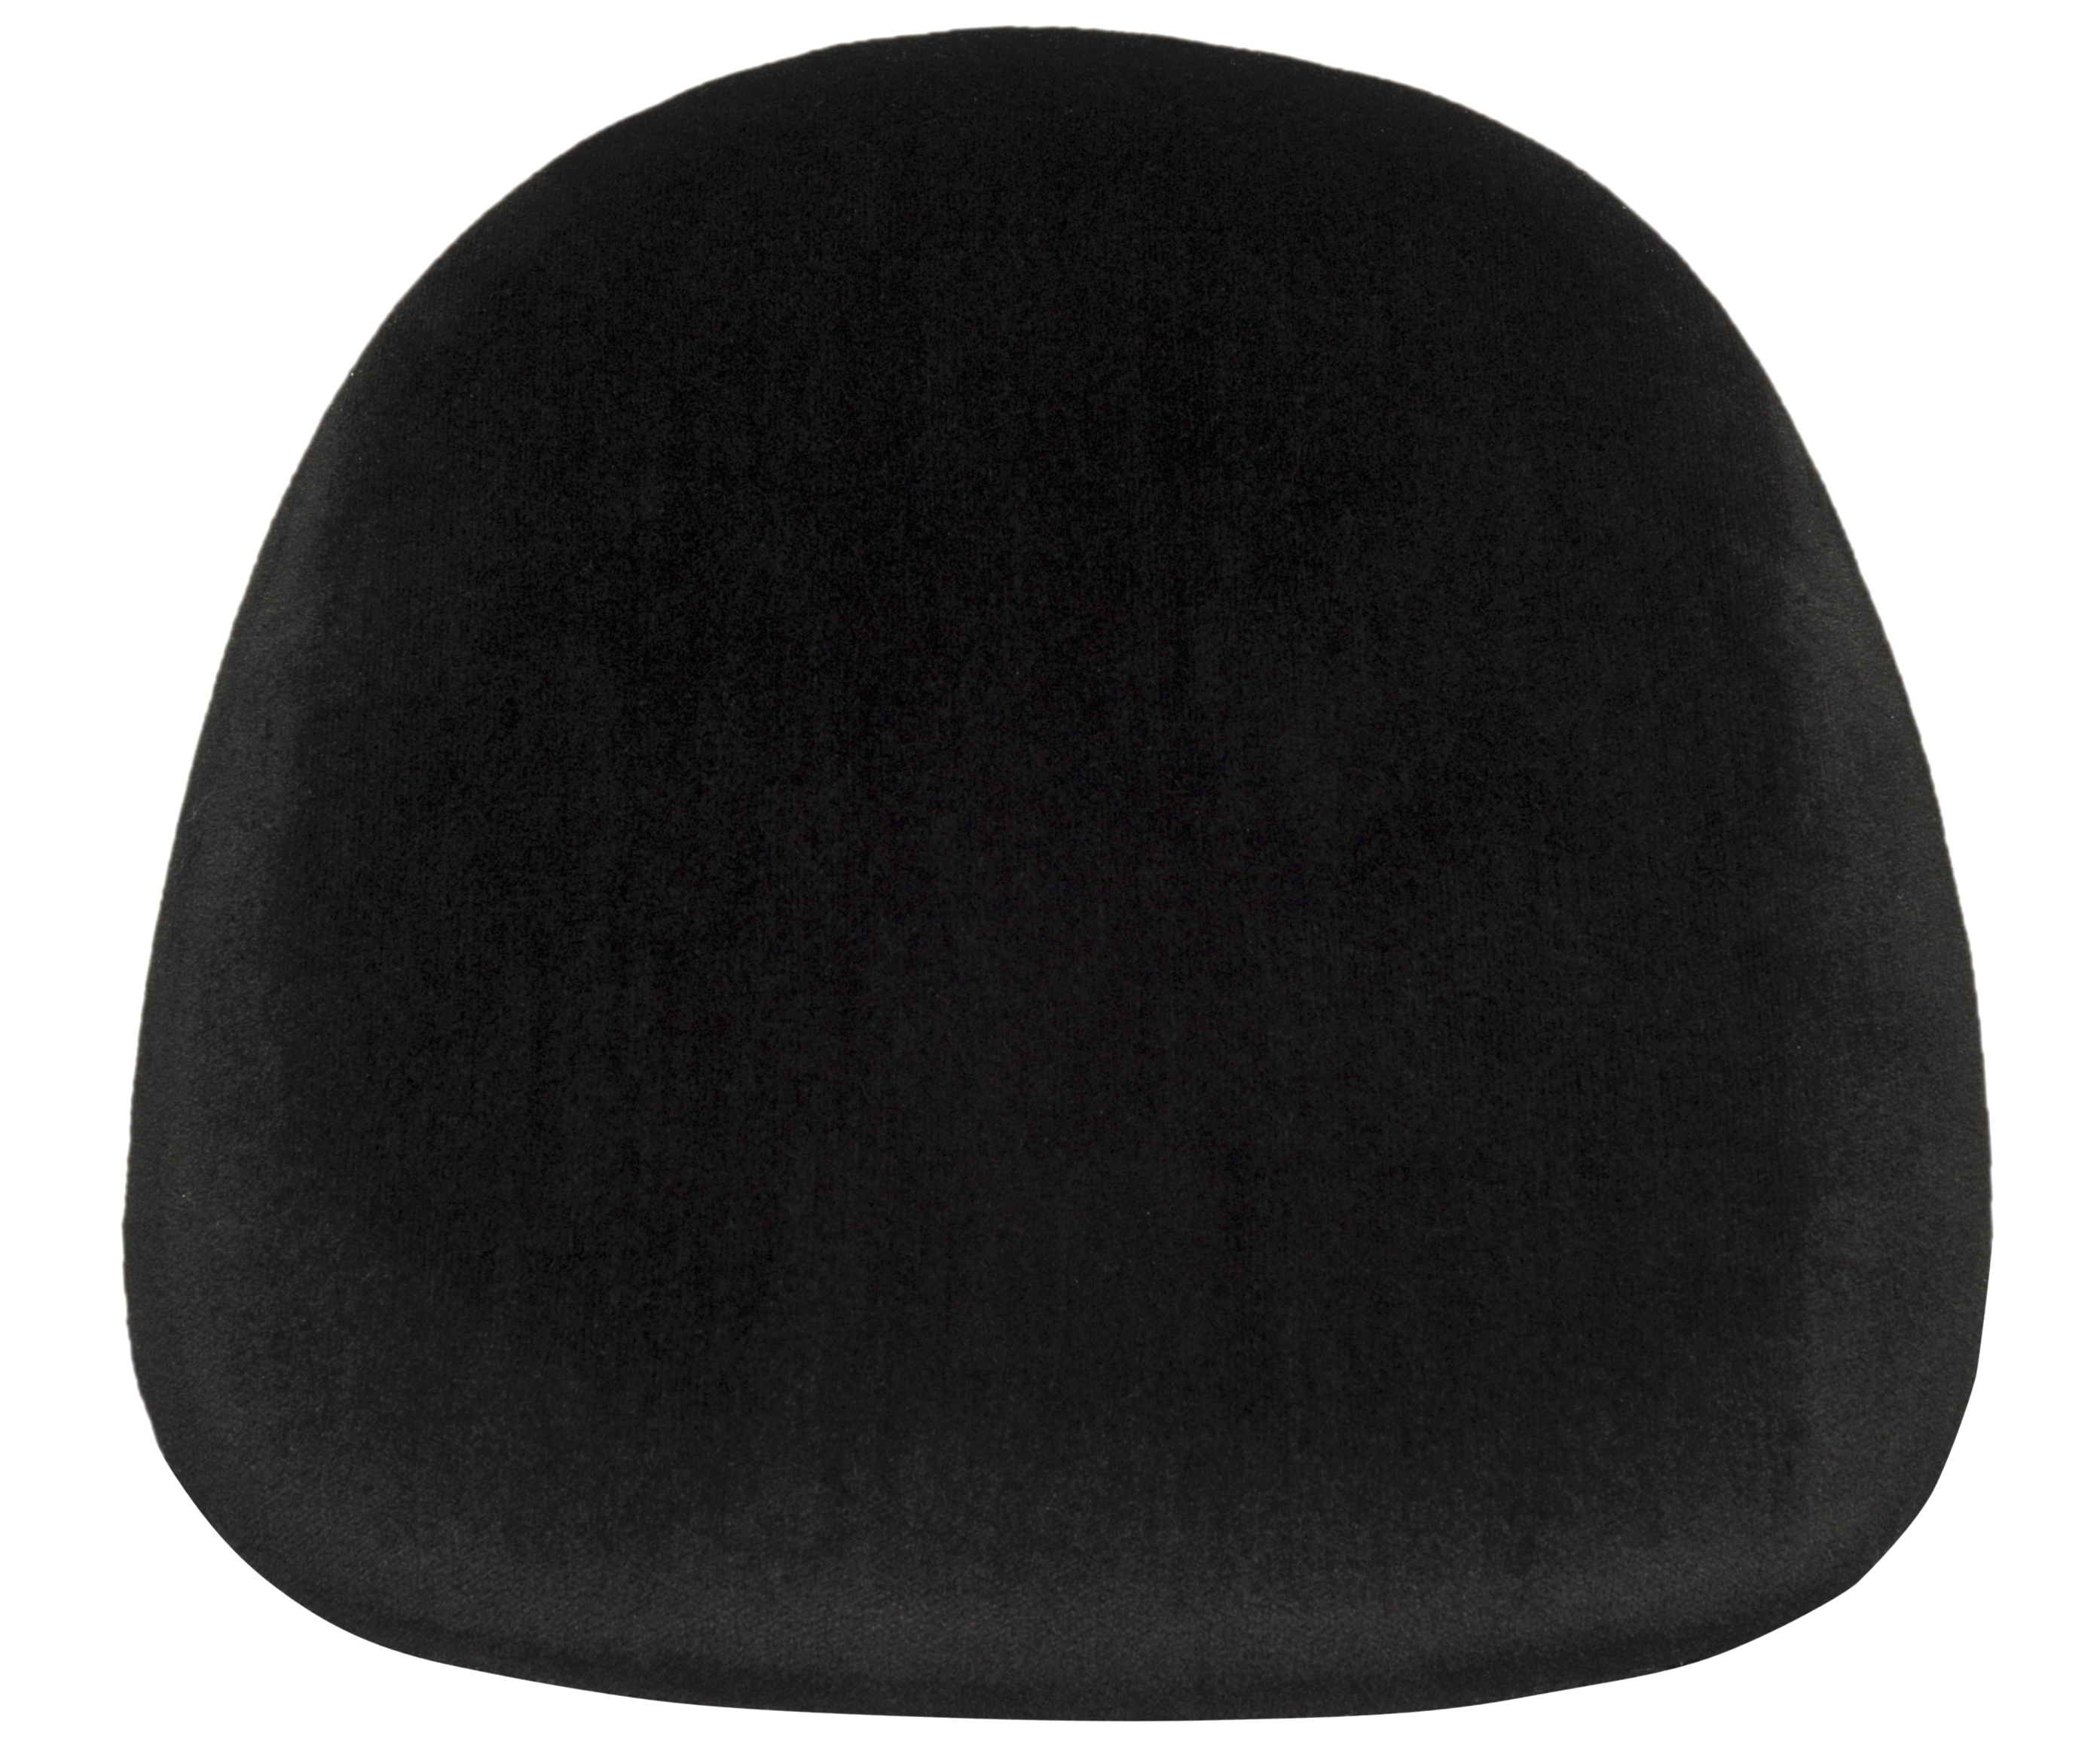 category_F1206 - Seat Pad Black